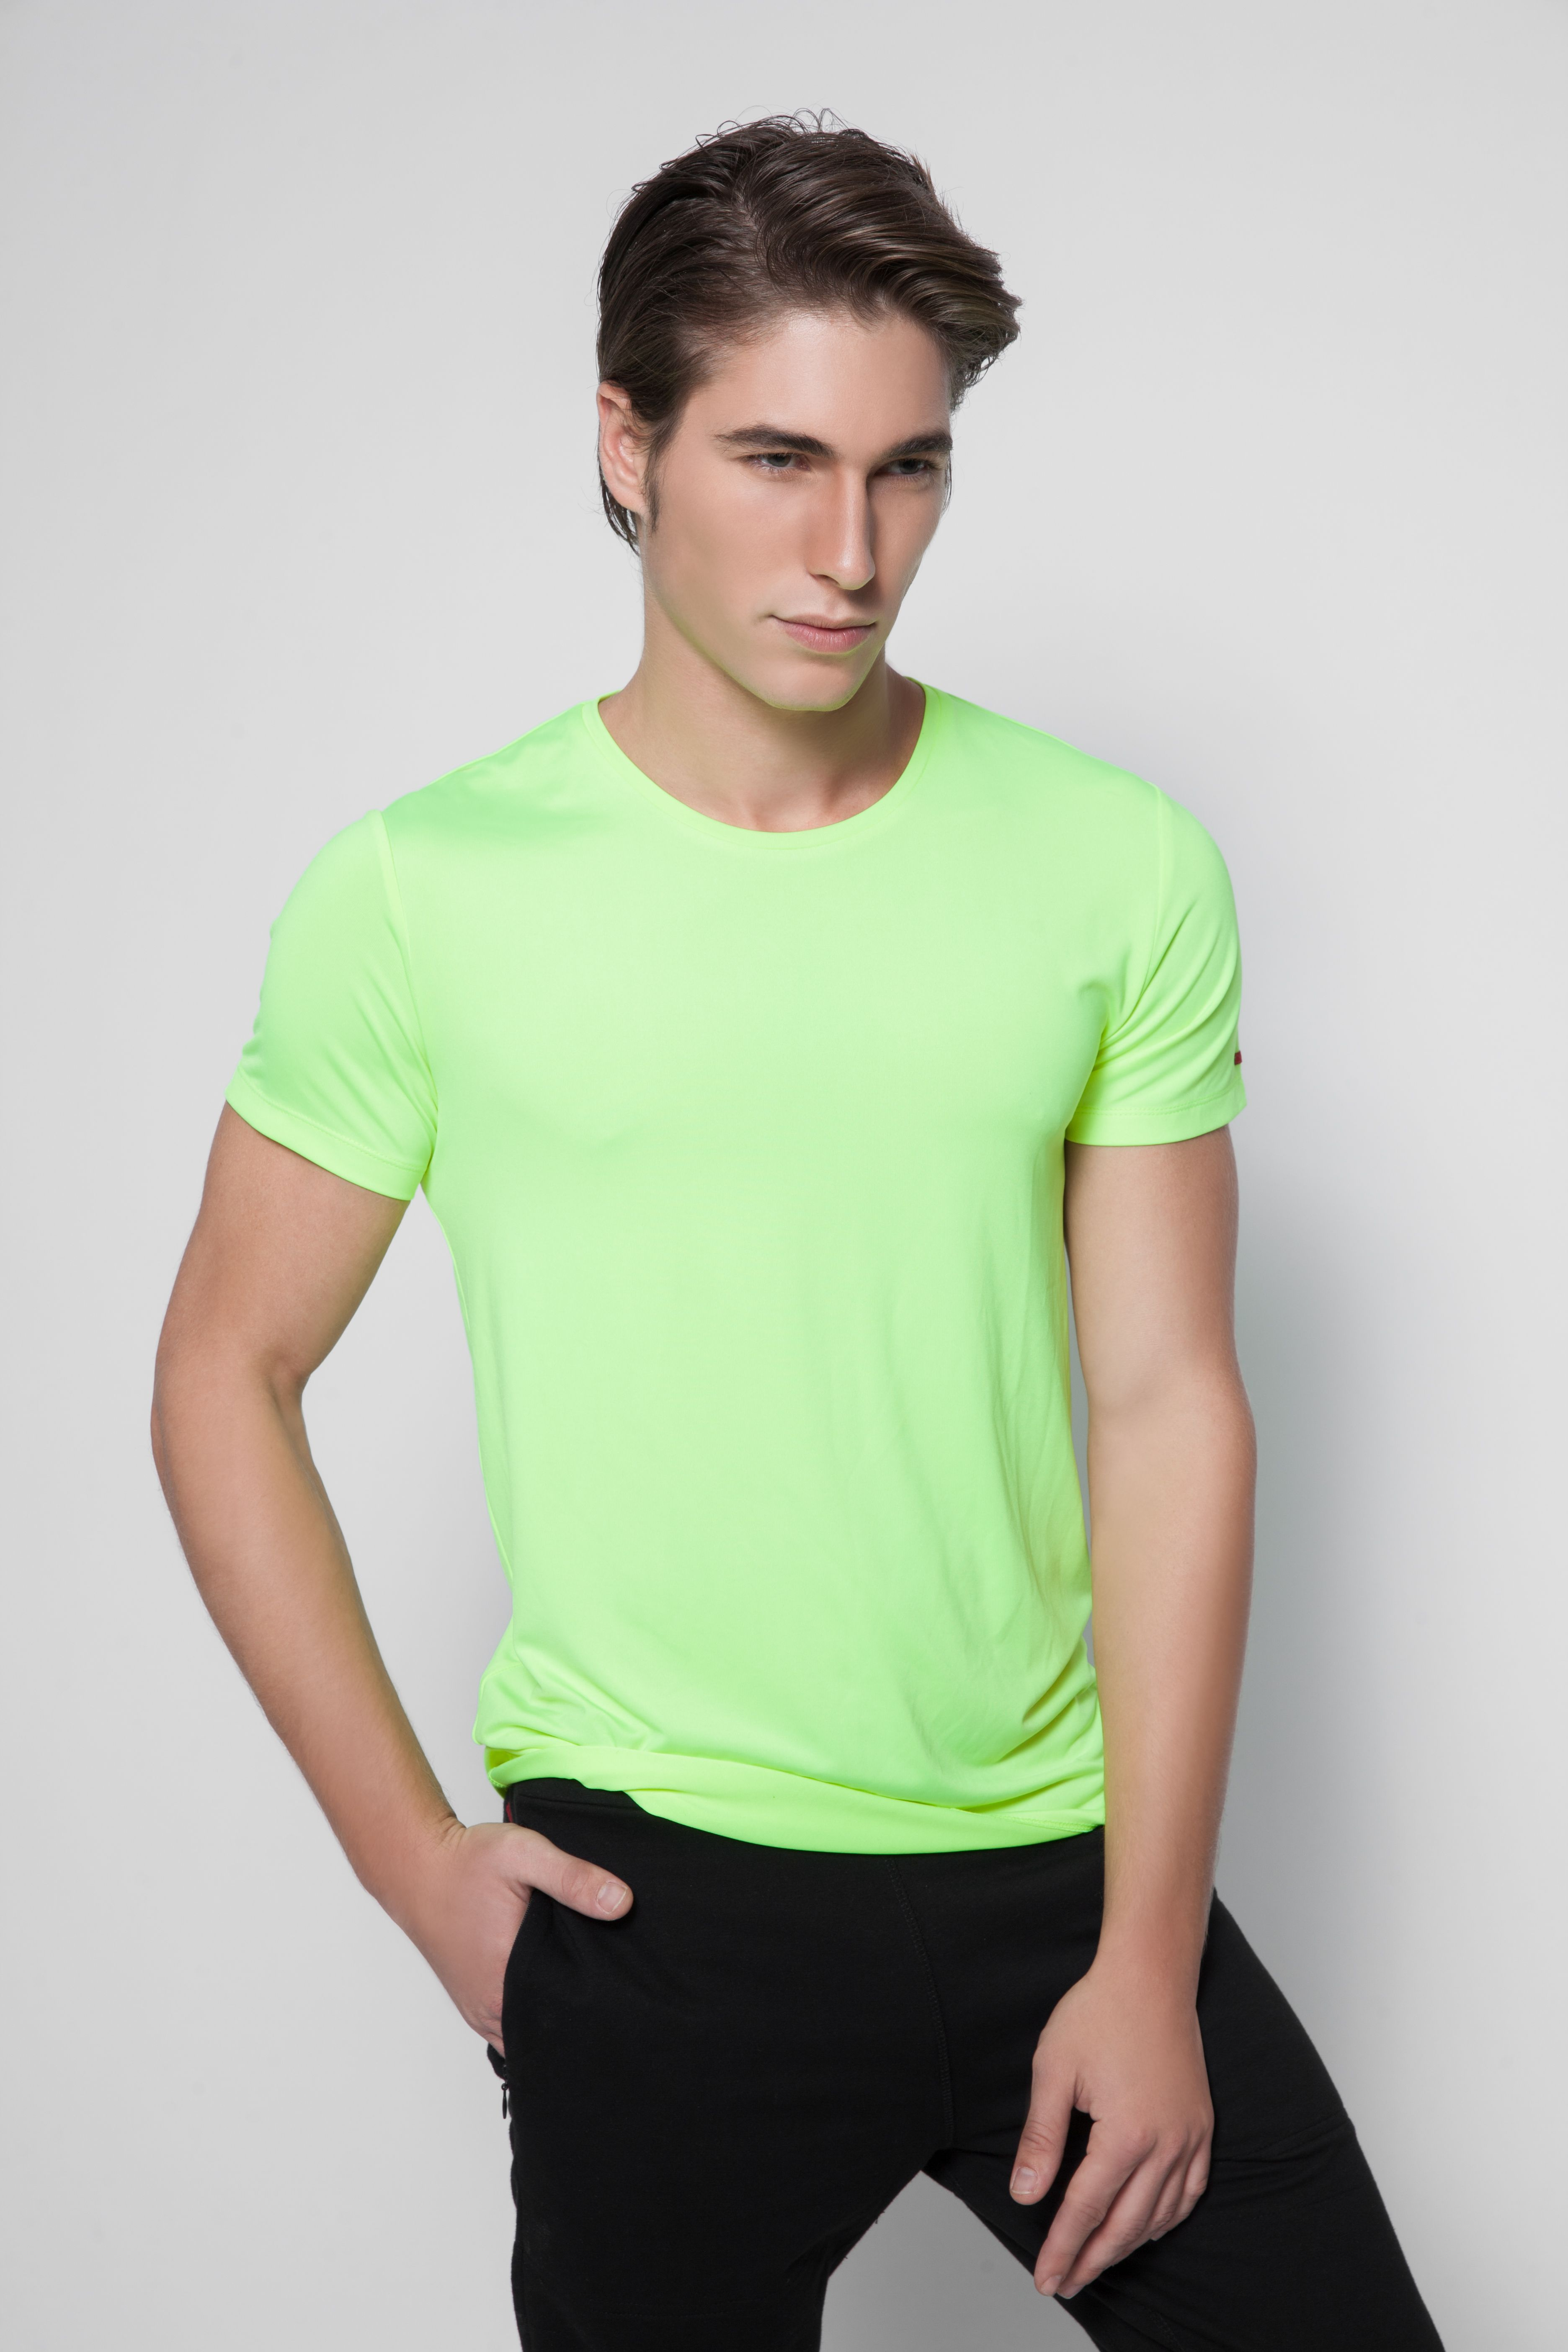 Stylish sporty neon yellow tshirt, inspired by cycling